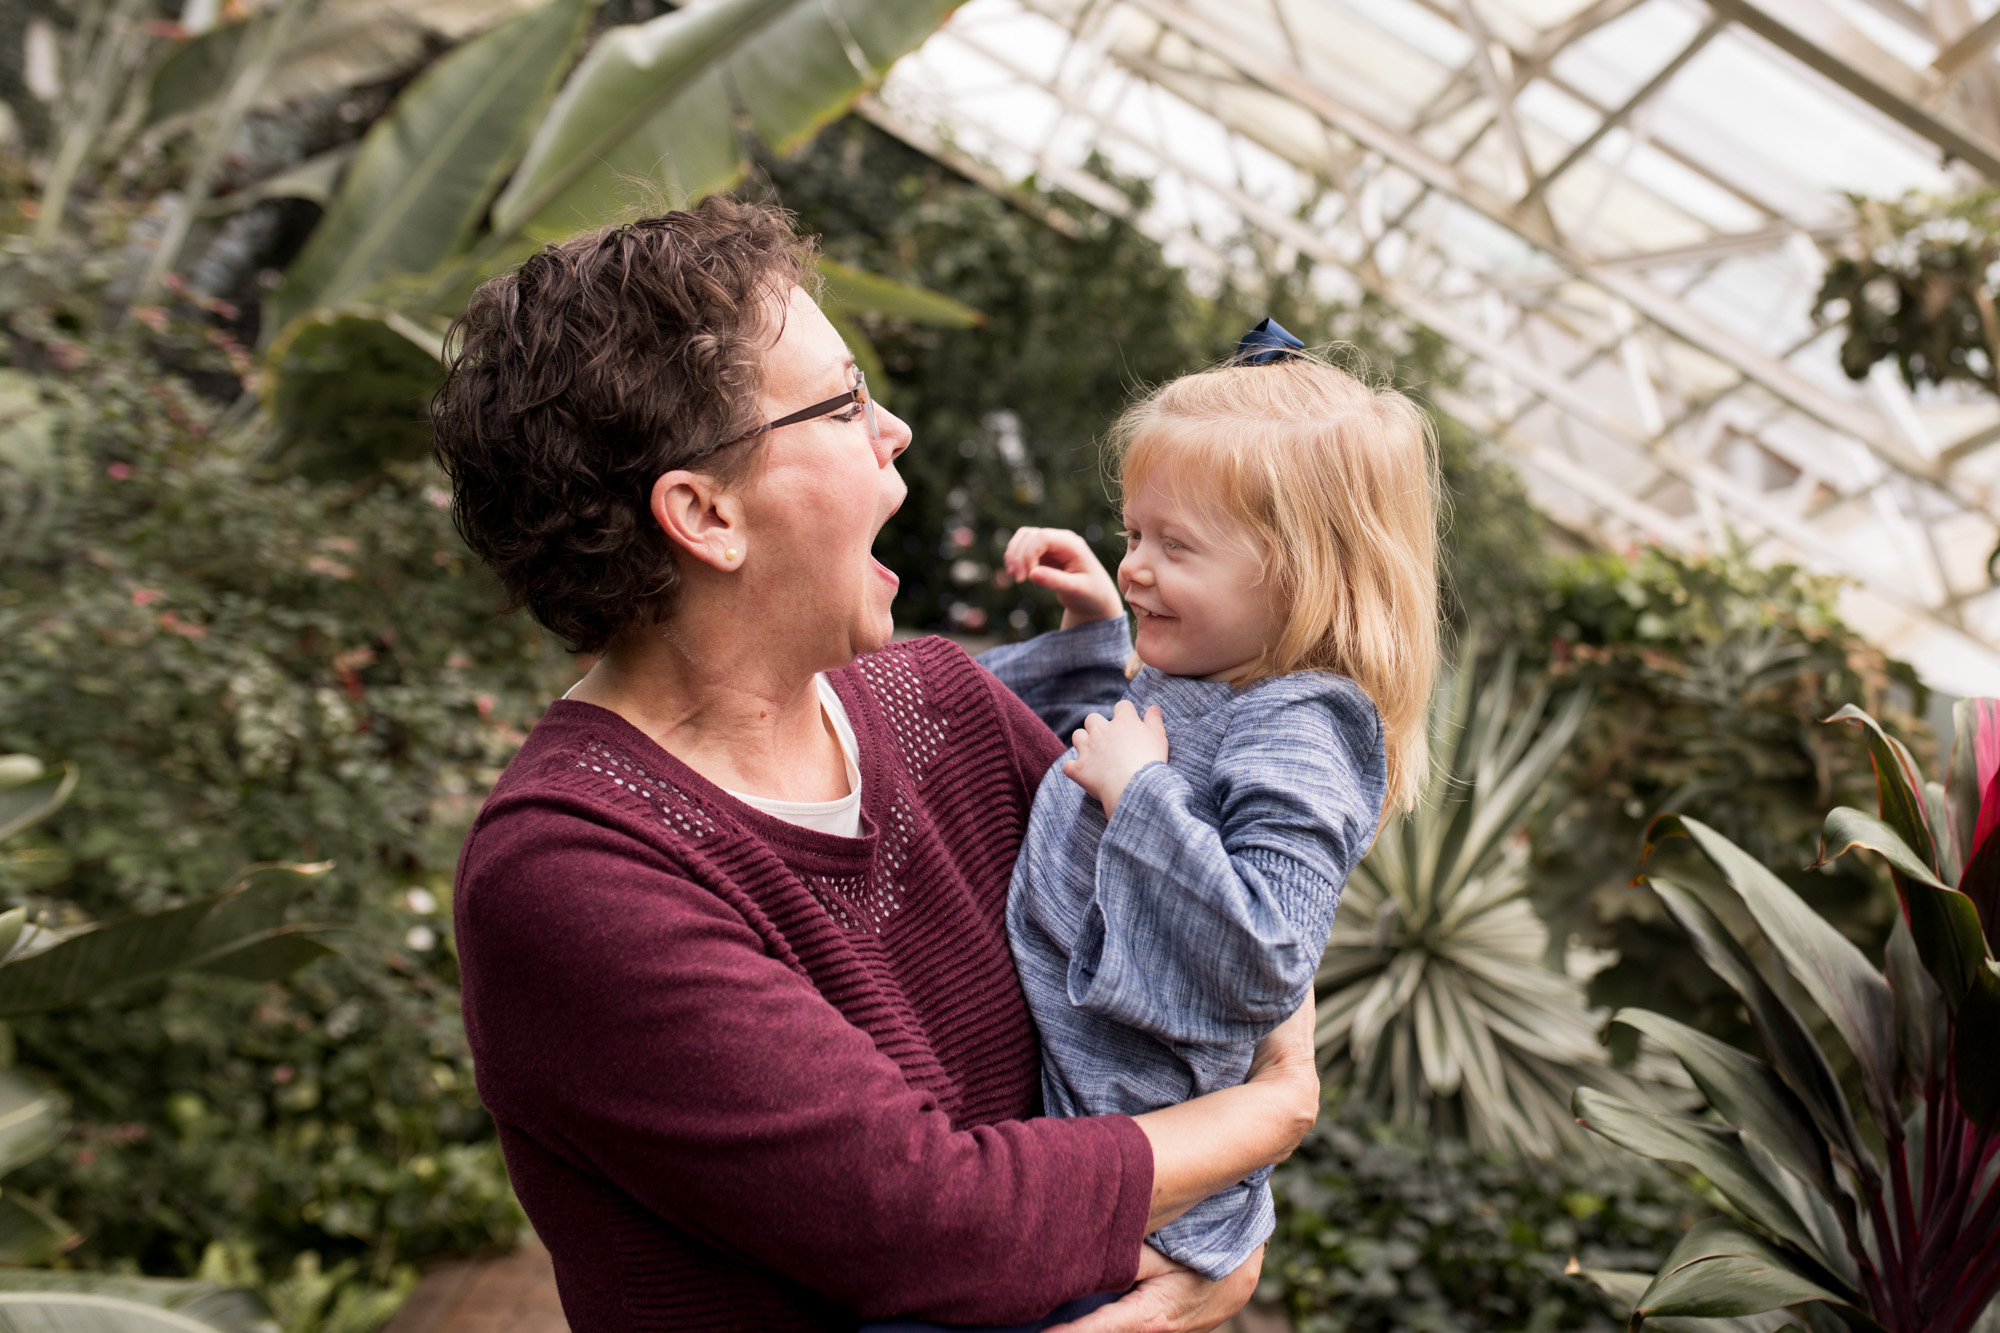 grandma laughs with granddaughter during Fort Wayne family photographer session at Foellinger-Freimann Botanical Conservatory